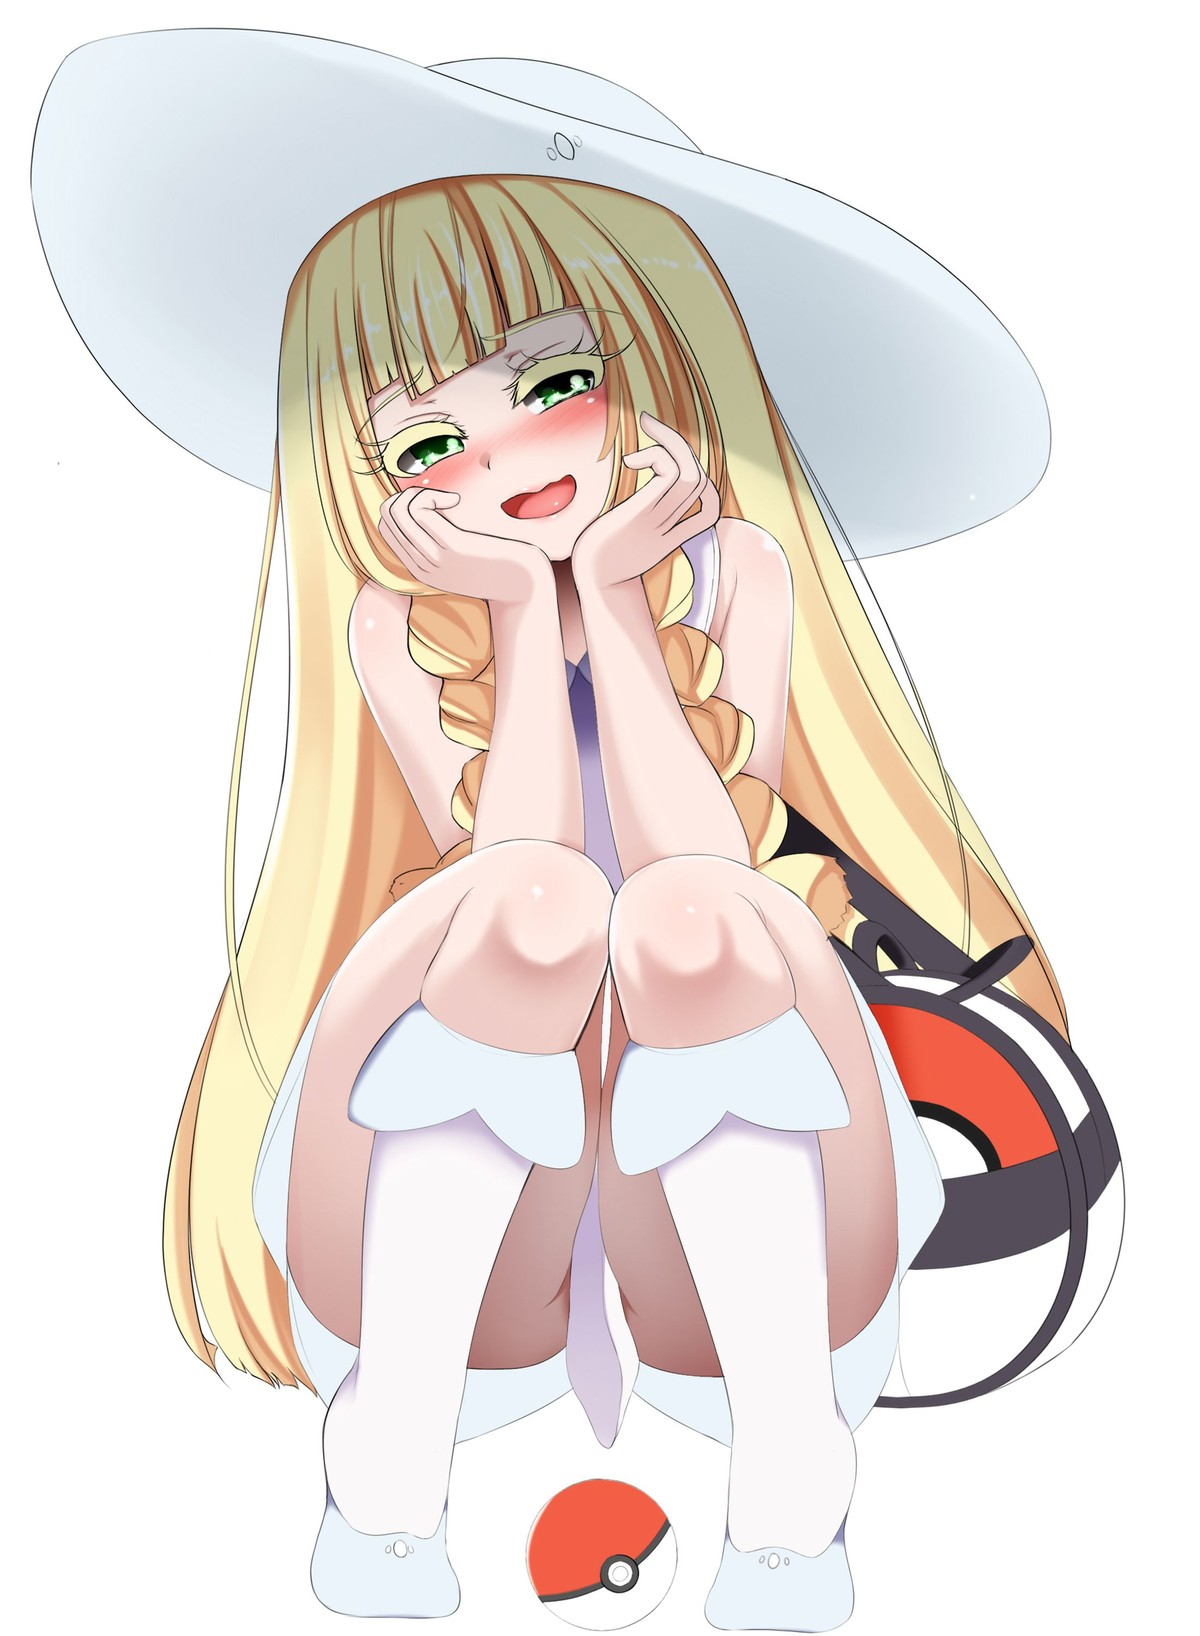 lillie_(pokemon)066